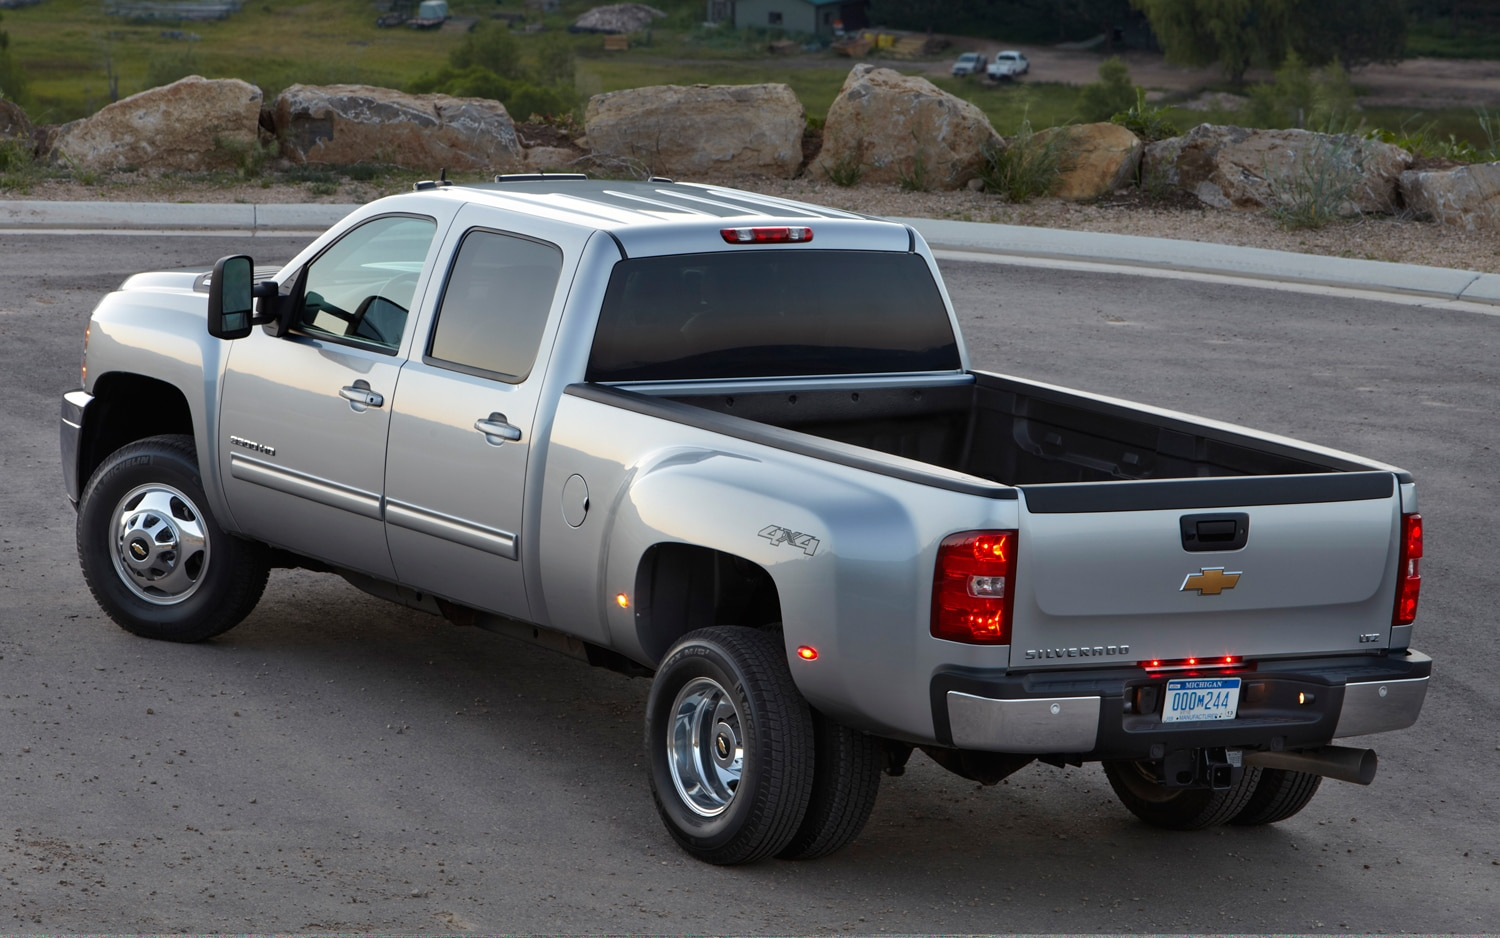 2013 Chevrolet Silverado HD Rear